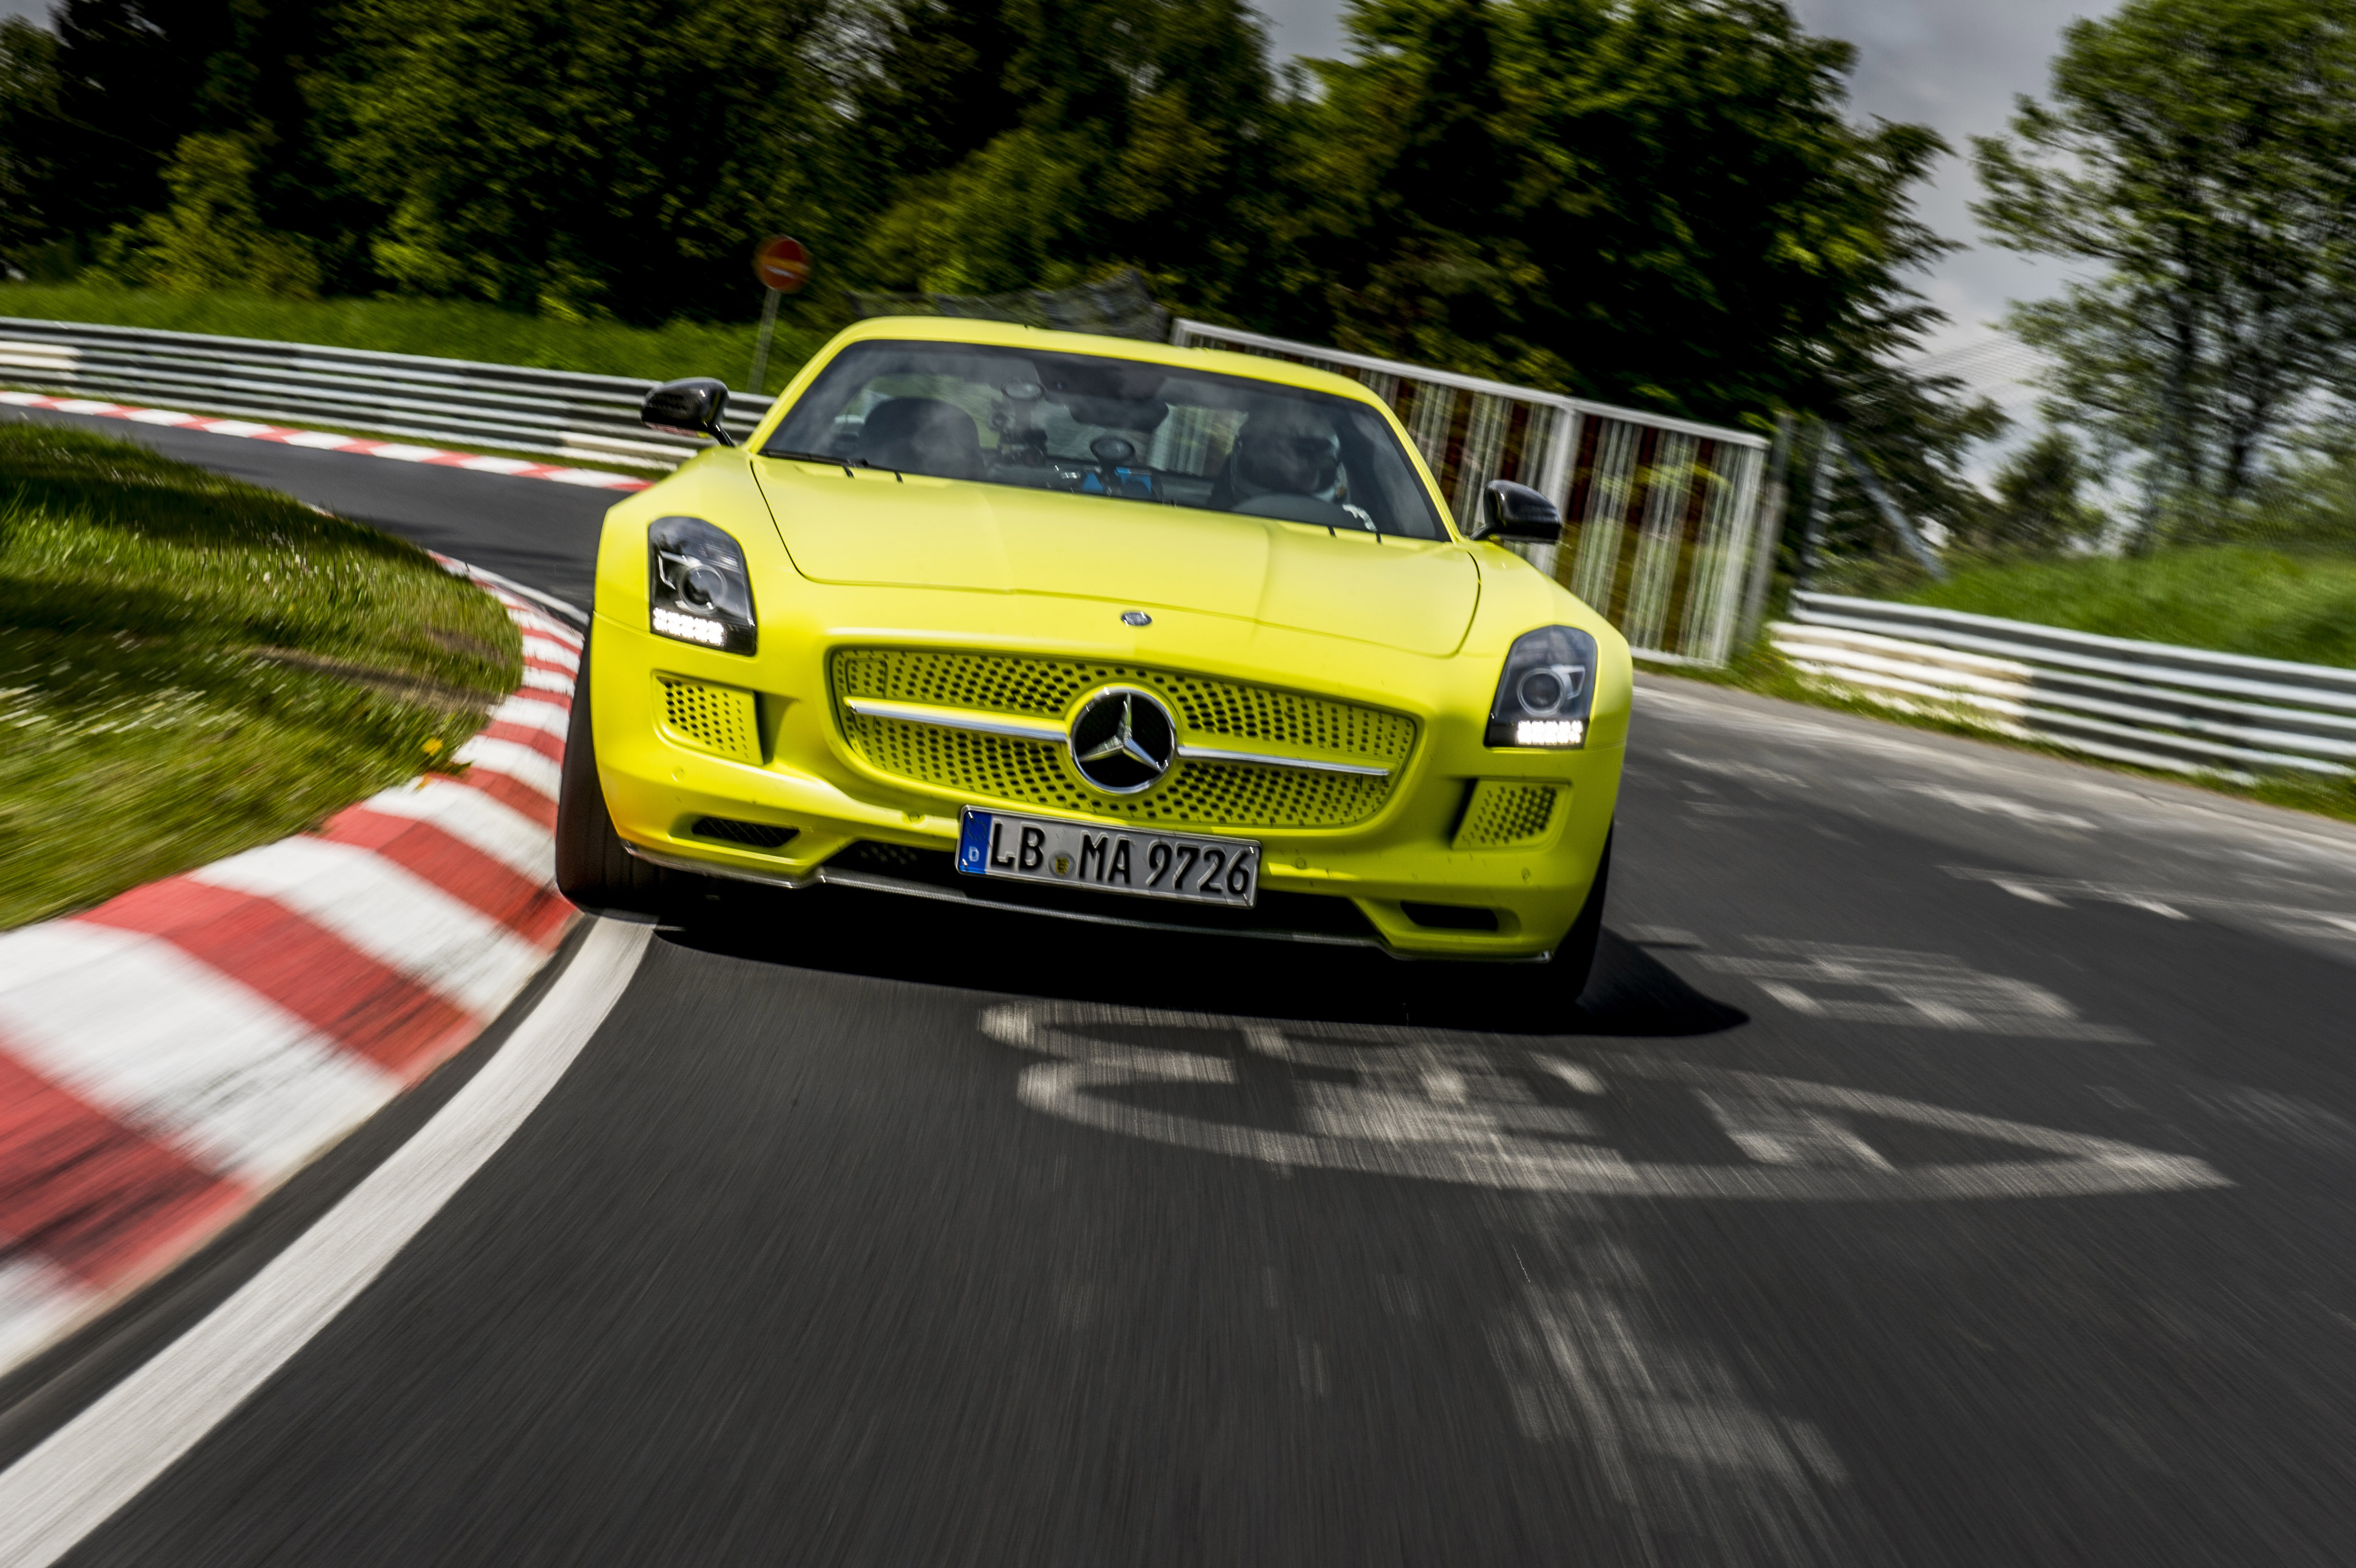 2014 mercedes benz sls amg coupe electric drive production car for Mercedes benz sls amg electric drive